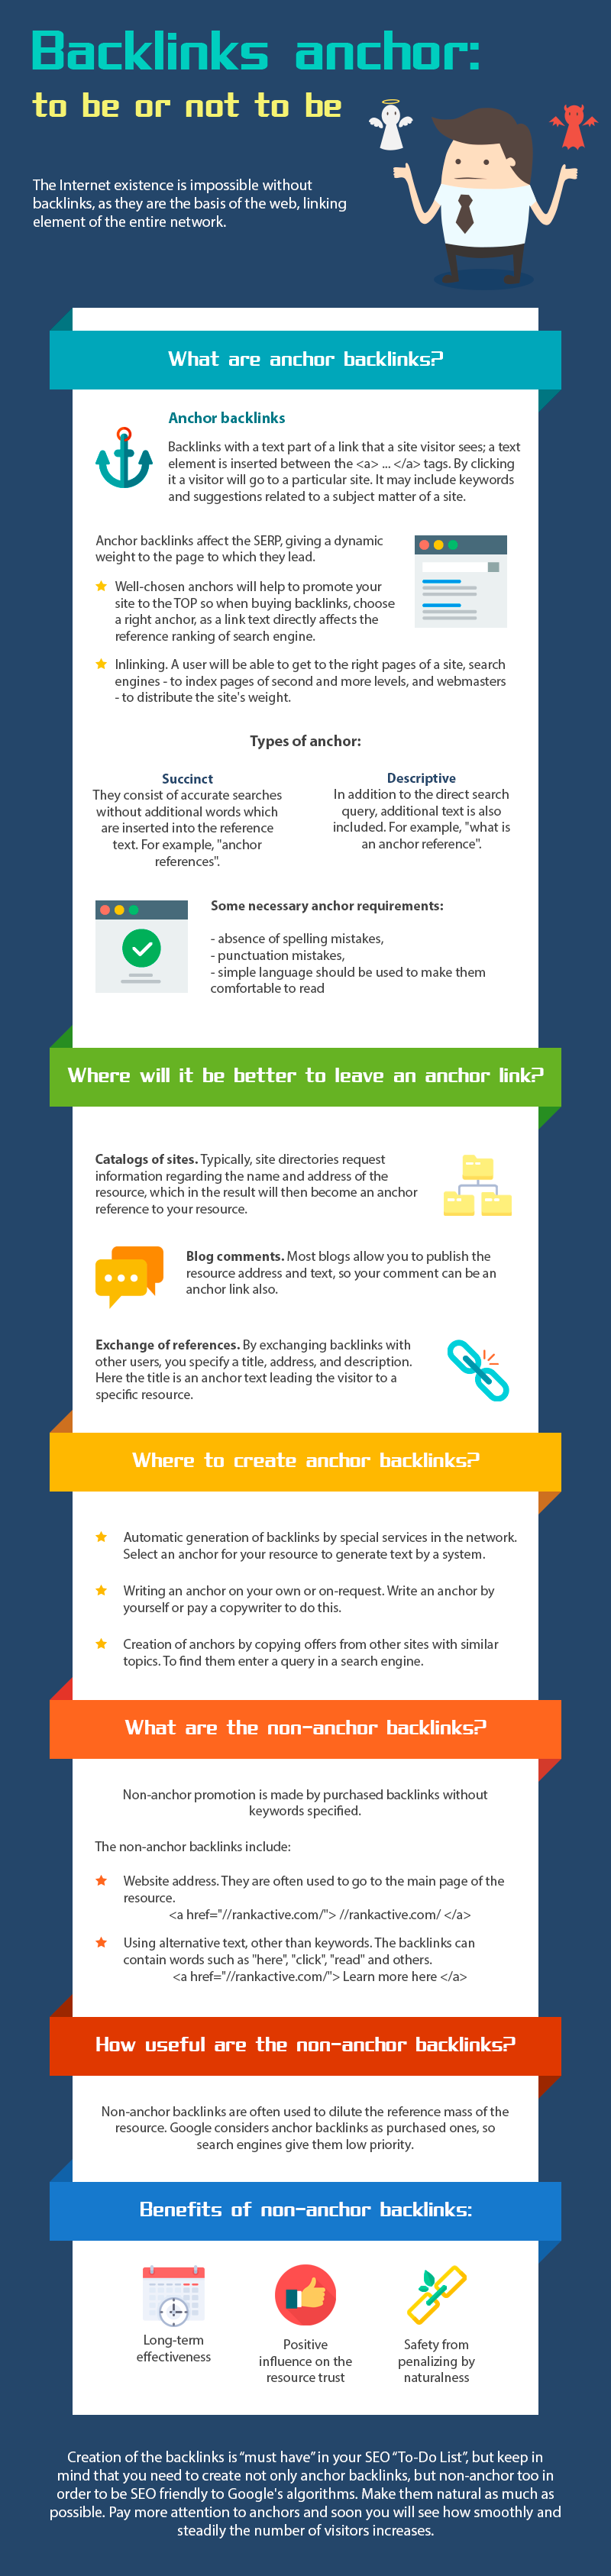 Backlinks anchor to be or not to be